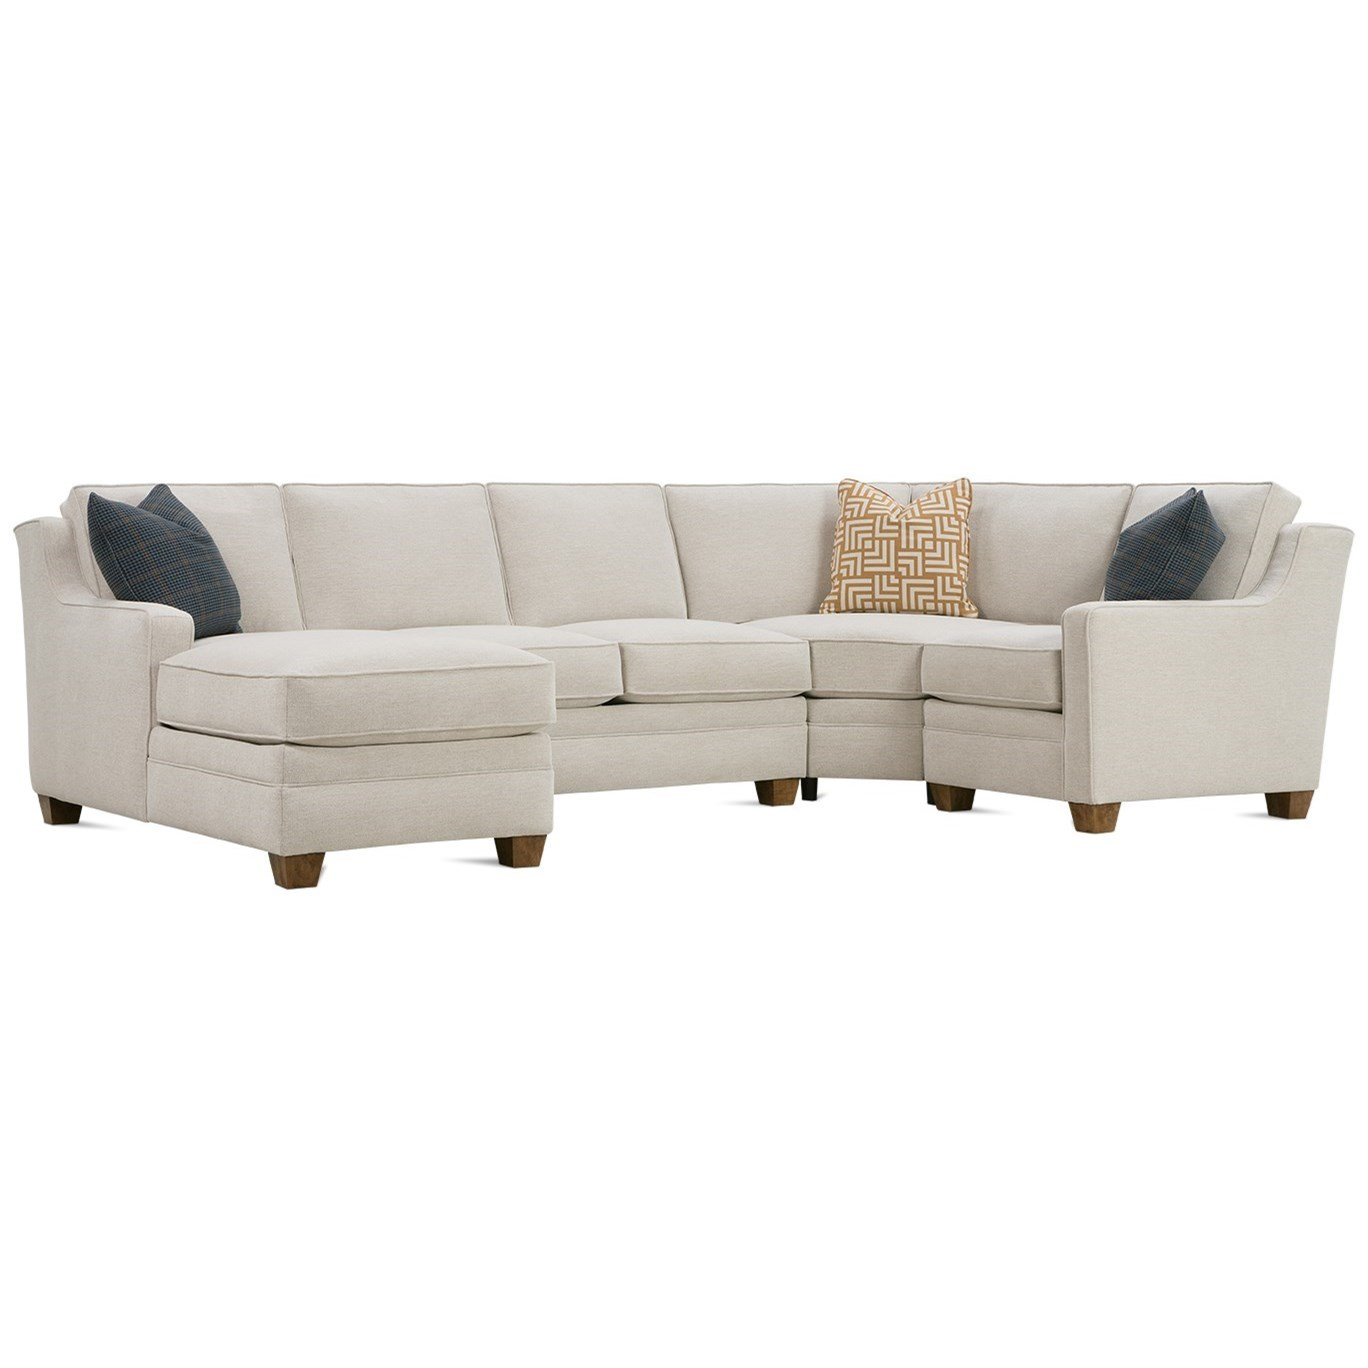 4-Piece Sectional with LAF Chaise